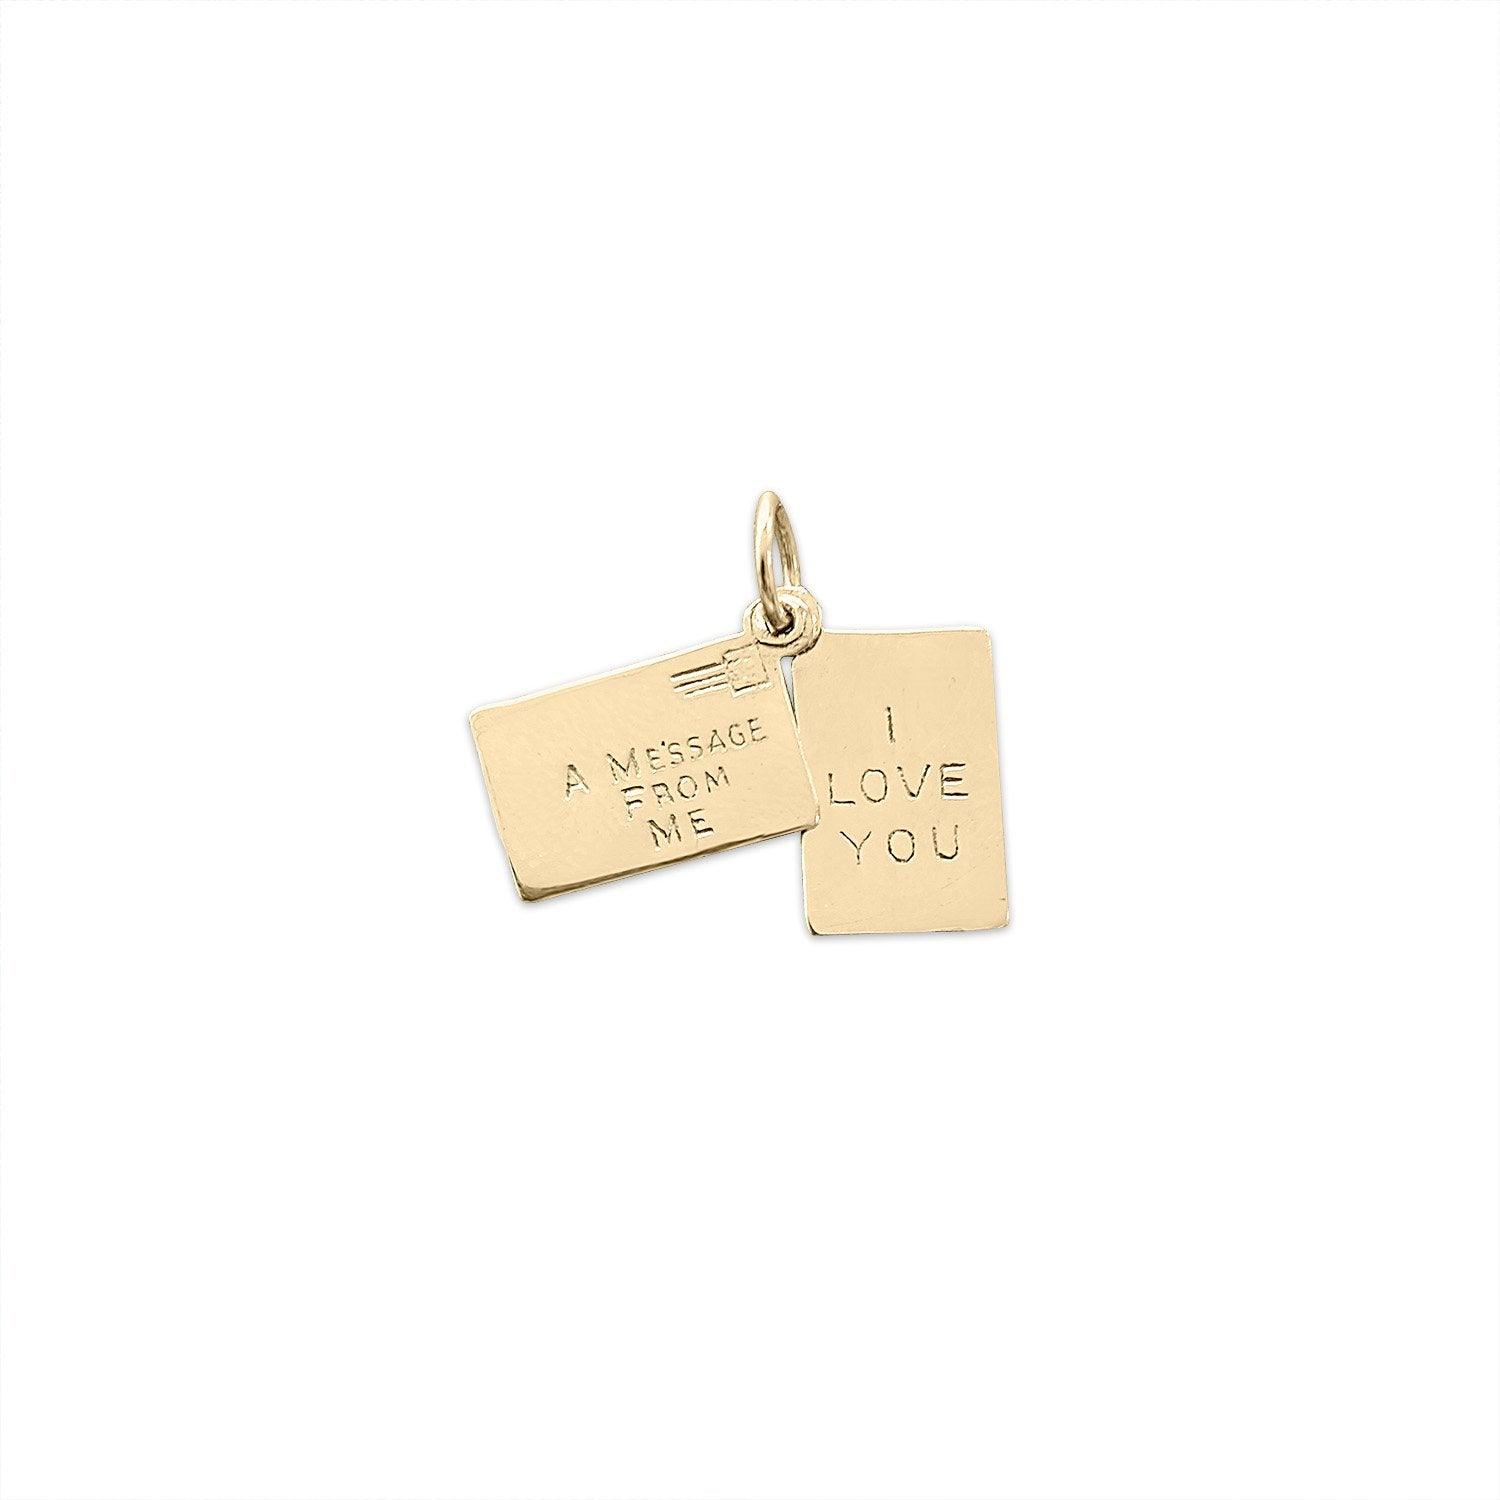 Vintage 'I Love You' Message Charm by Fewer Finer